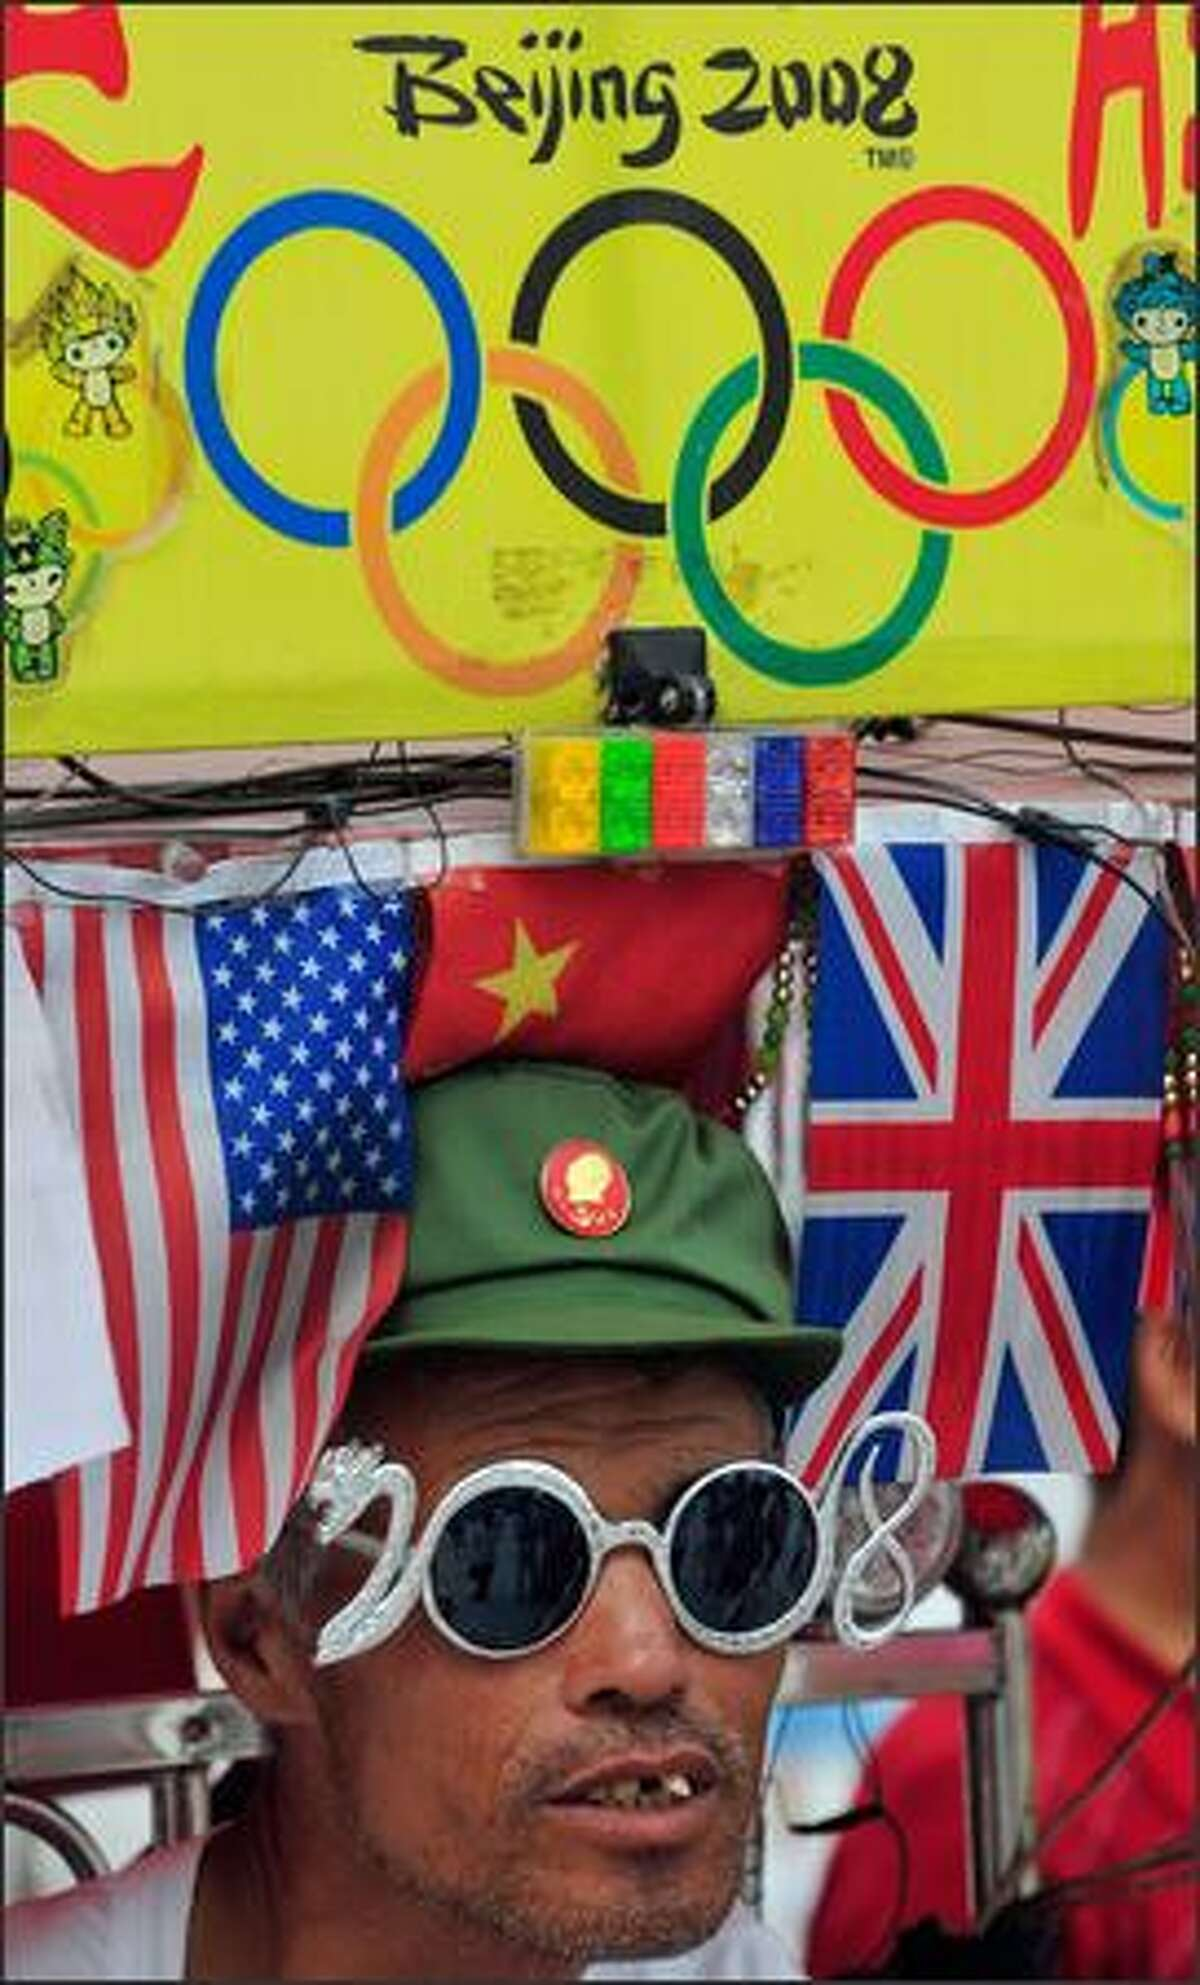 An Olympic fan rides his Olympic-decorated tricycle past the National Stadium, also known as the Bird's Nest, in Beijing. Fans will be unable to wave banners supporting national teams at the Beijing Olympics, according to an official guide book for spectators.